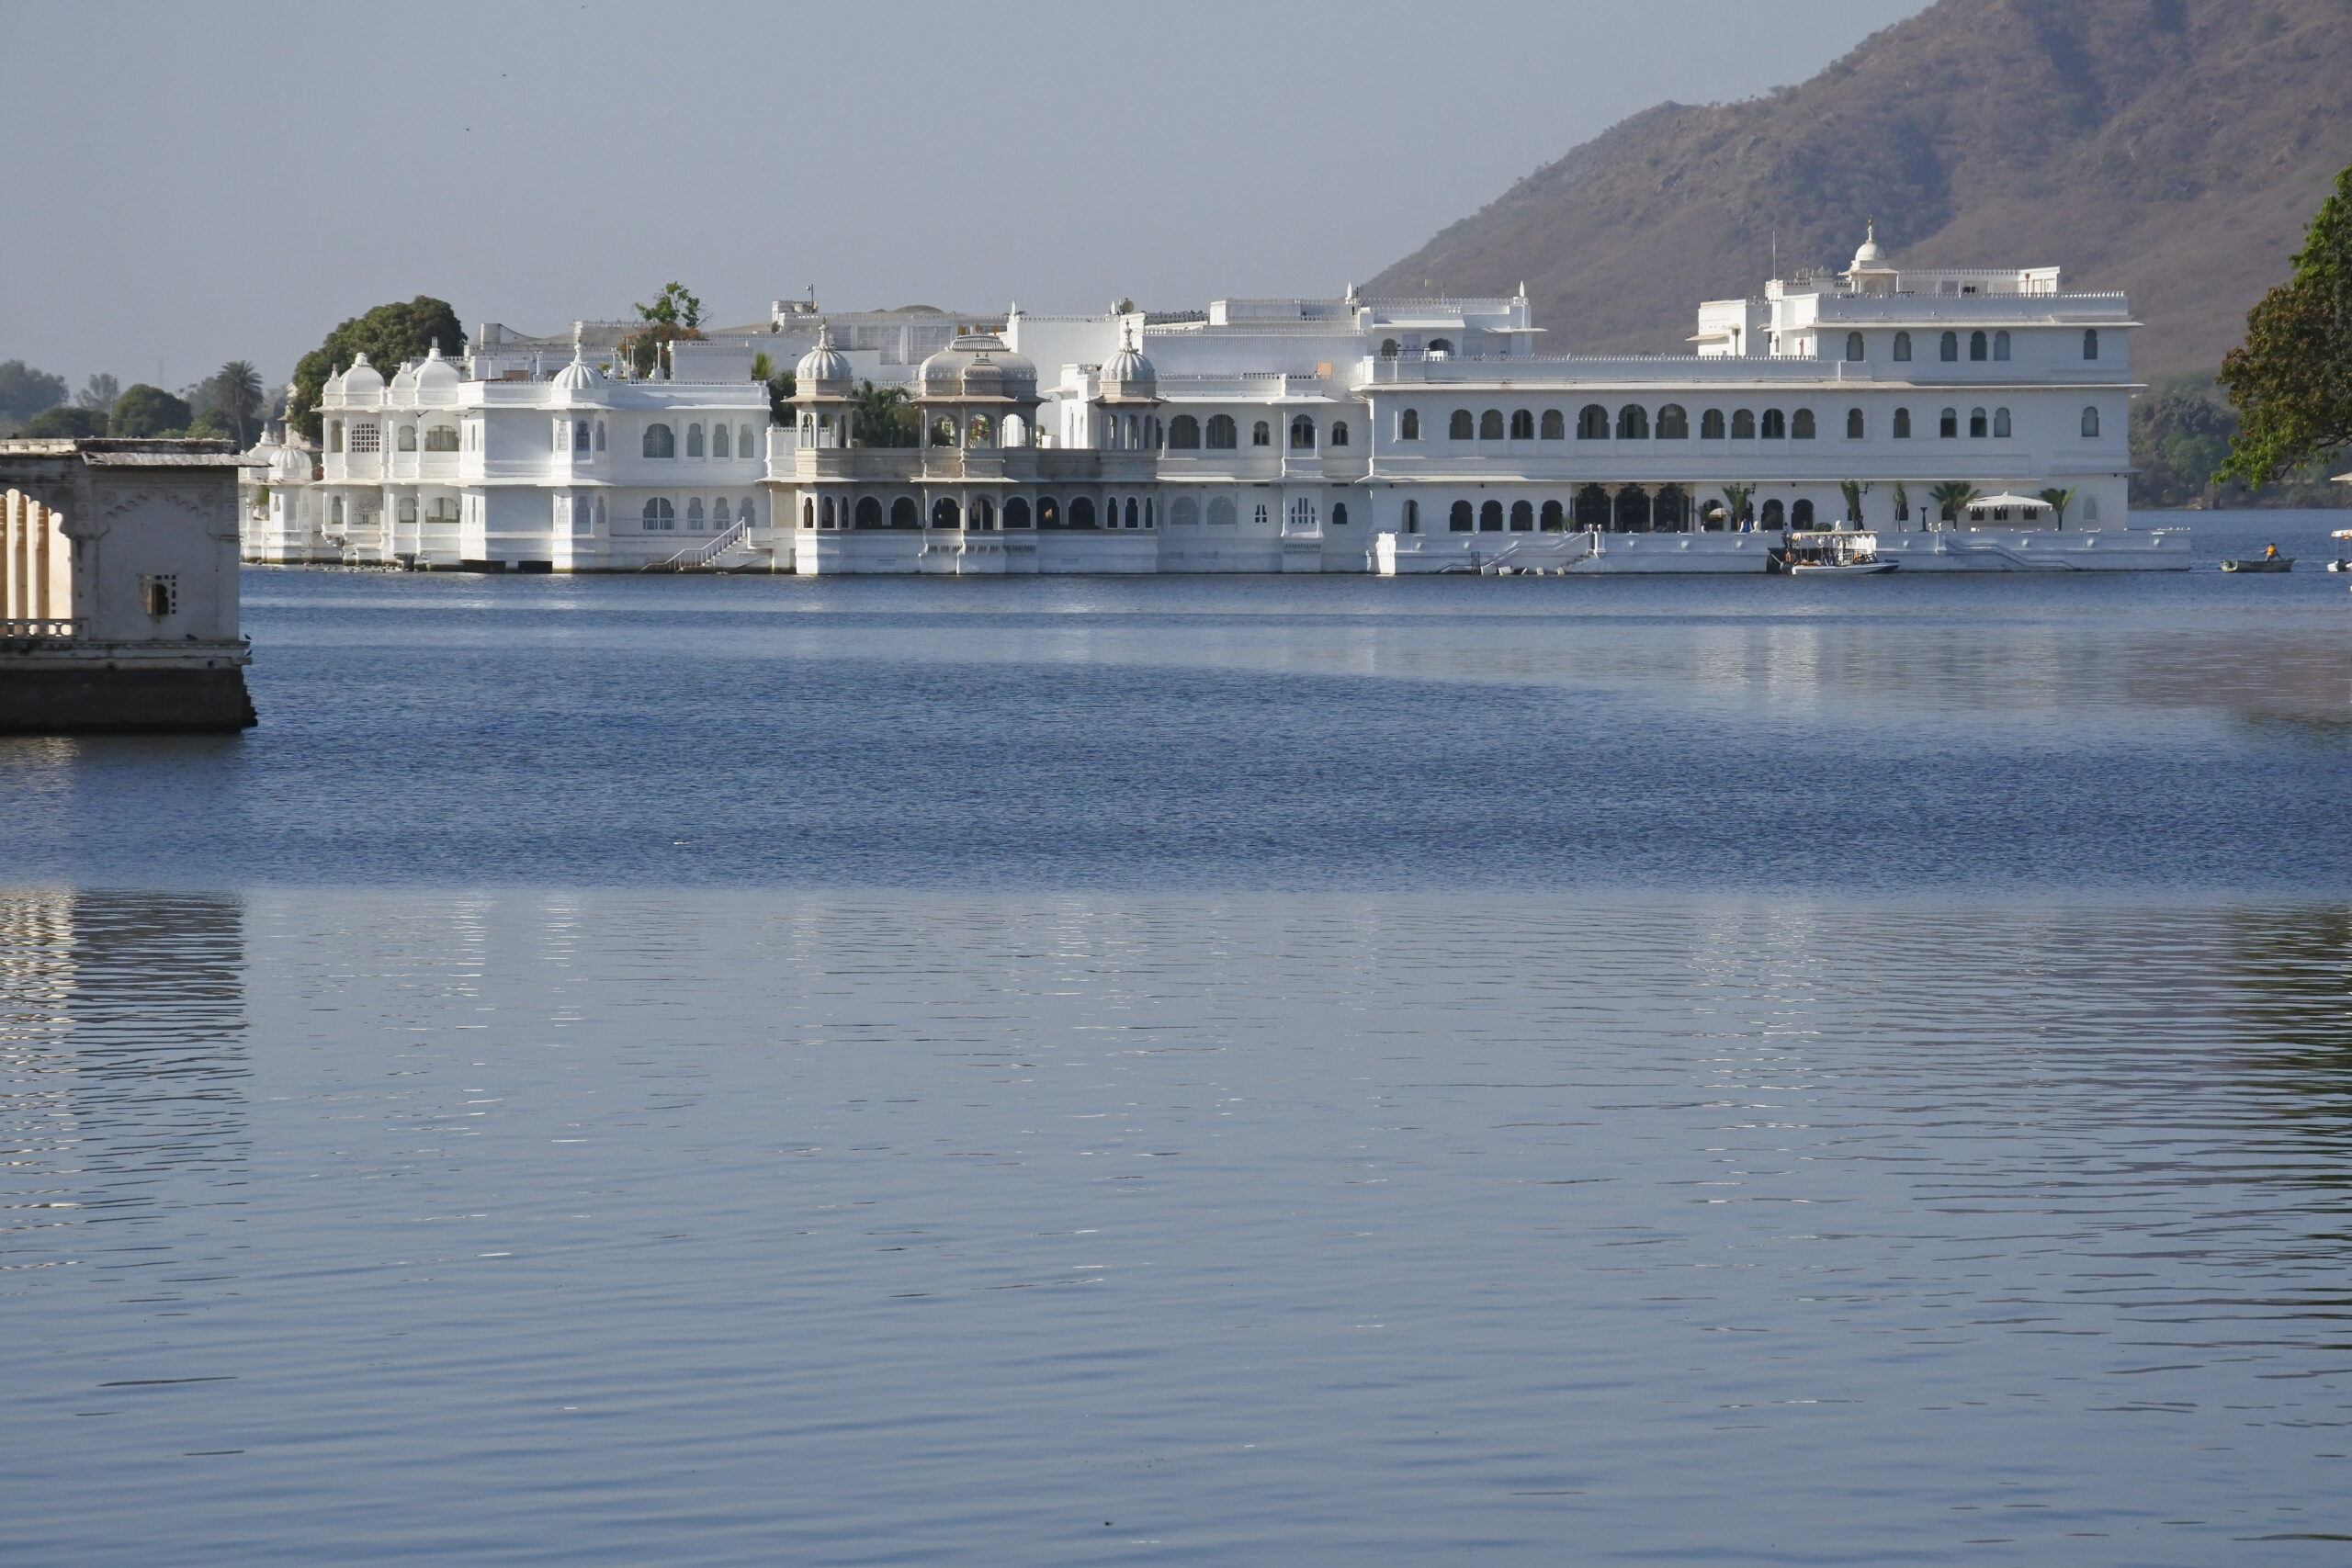 Hotel in water India